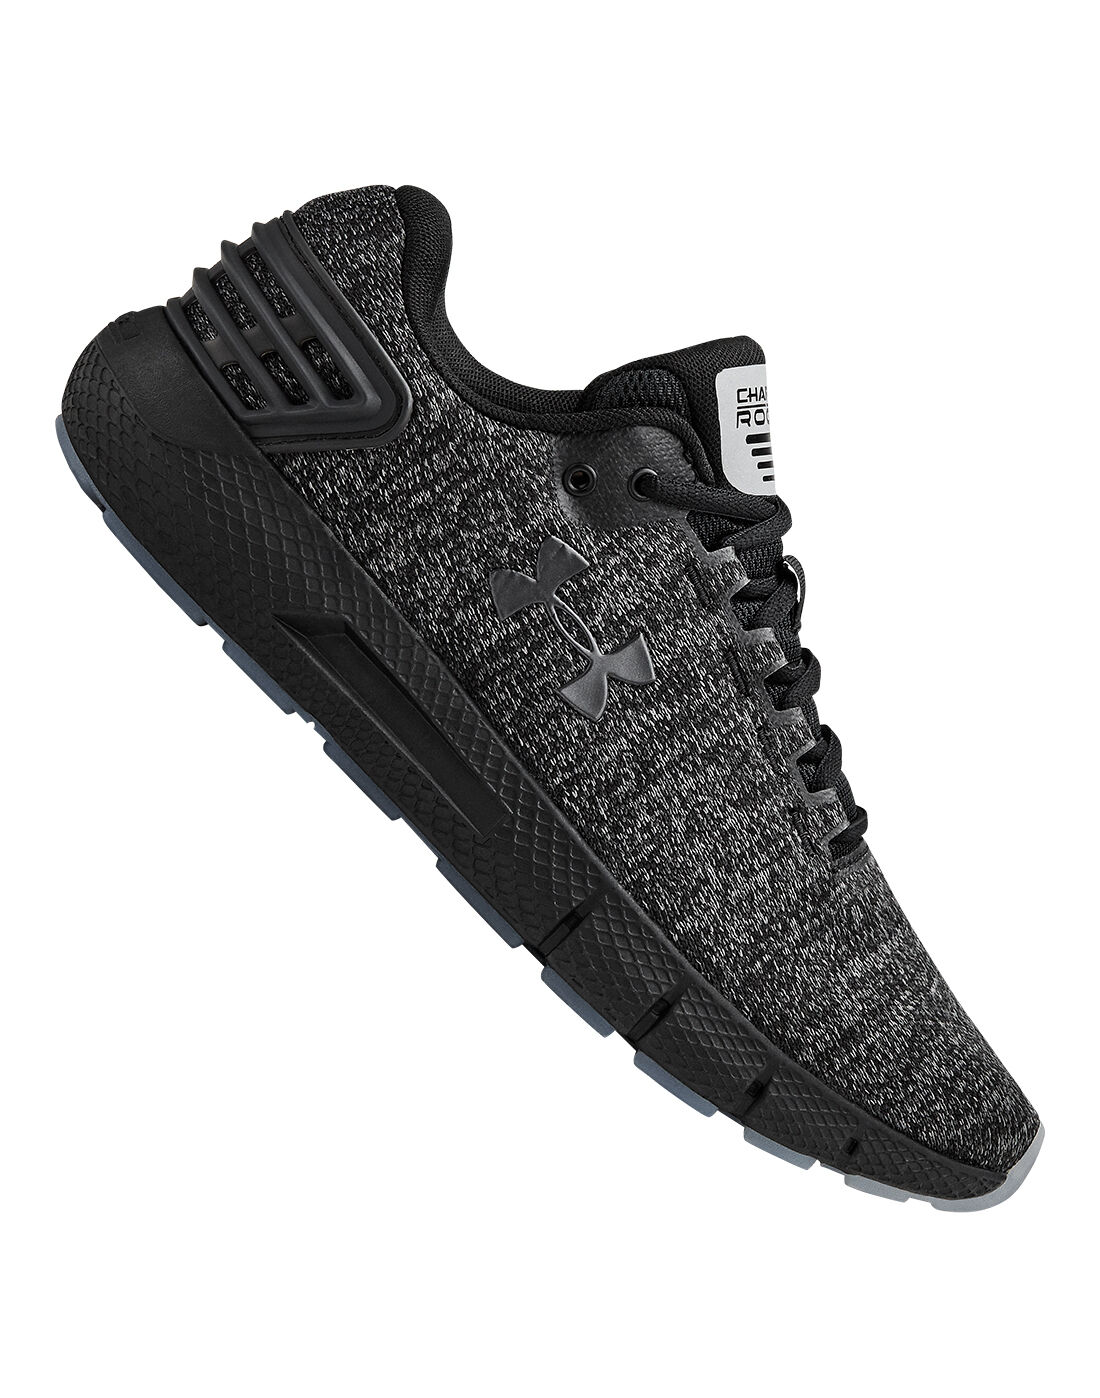 Under Armour Mens Charged Rogue Twist